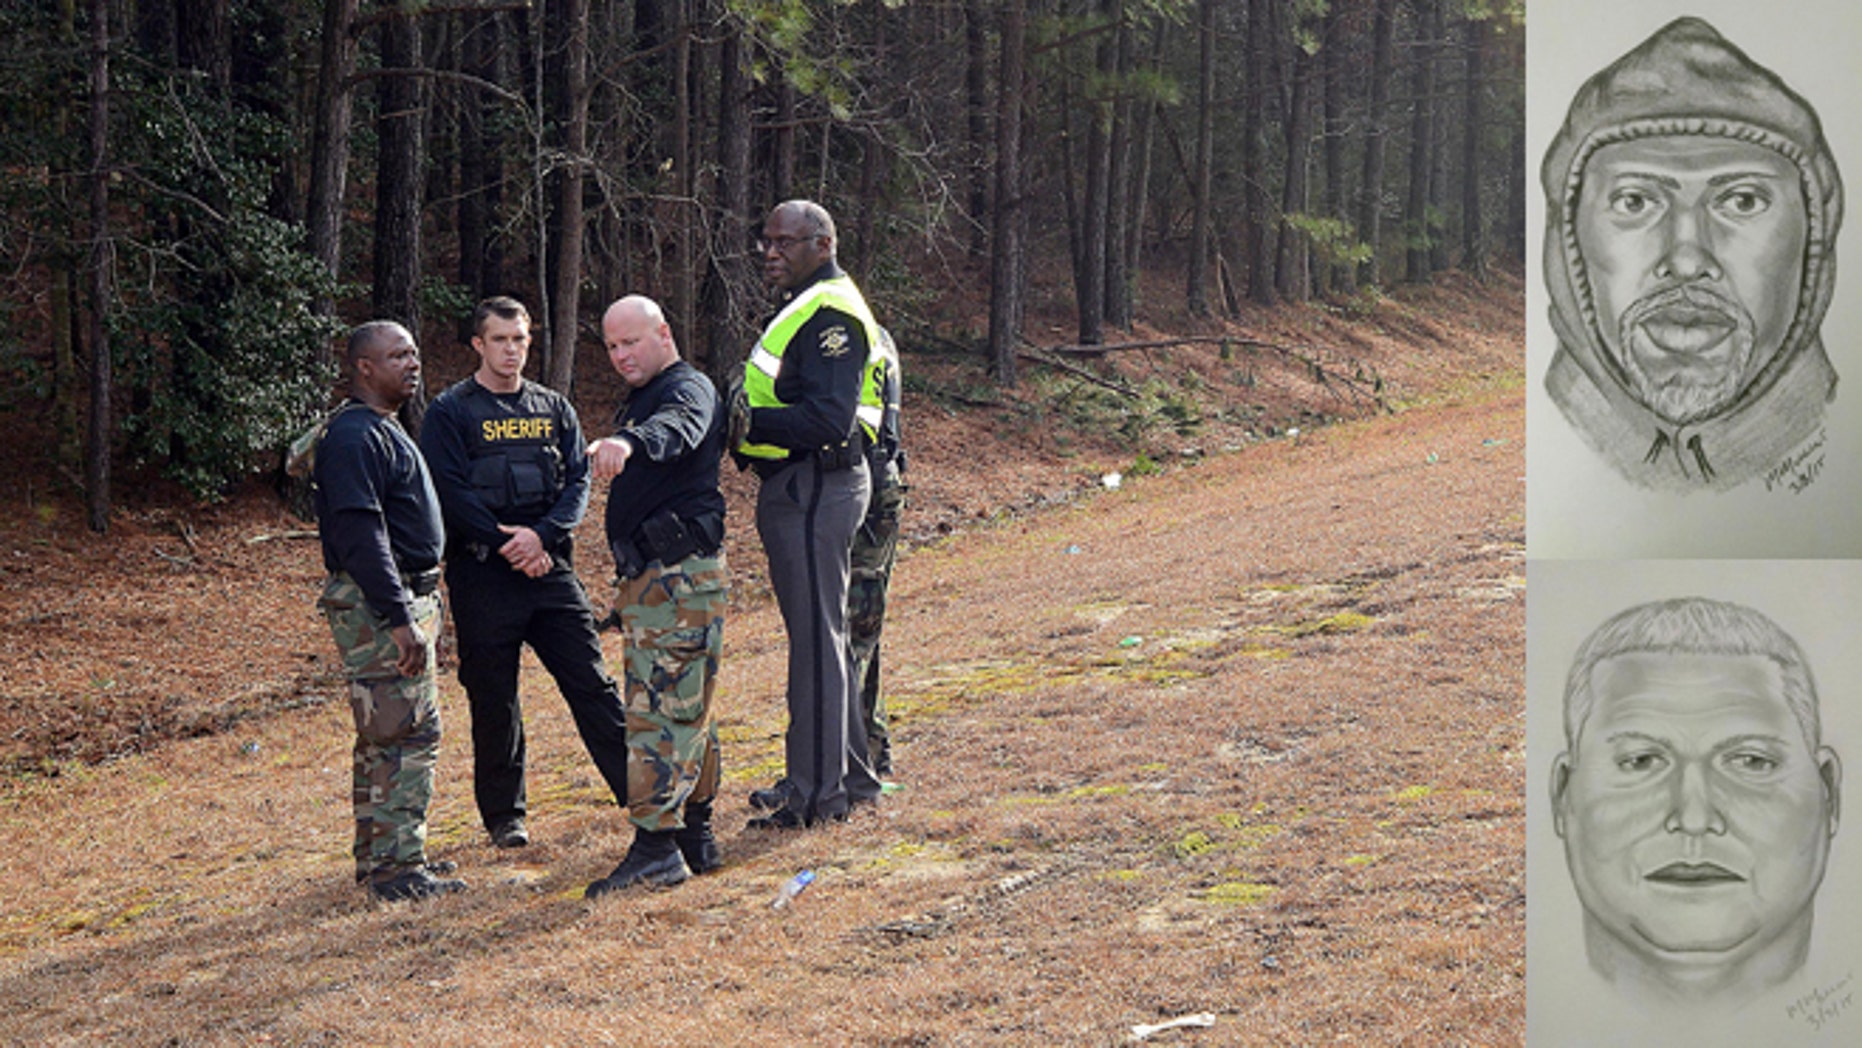 Wilson County Sheriff's Deputies investigate an area near Interstate 95, Monday, March 2, 2015, in Wilson, (AP Photo/The Wilson Times, Brad Coville) Inset: These images released Wednesday, March 4, 2015, by the Sheriff's Office, show composite sketches by investigators of two of the suspects in the heist. (AP Photo/Wilson County Sheriff's Office)